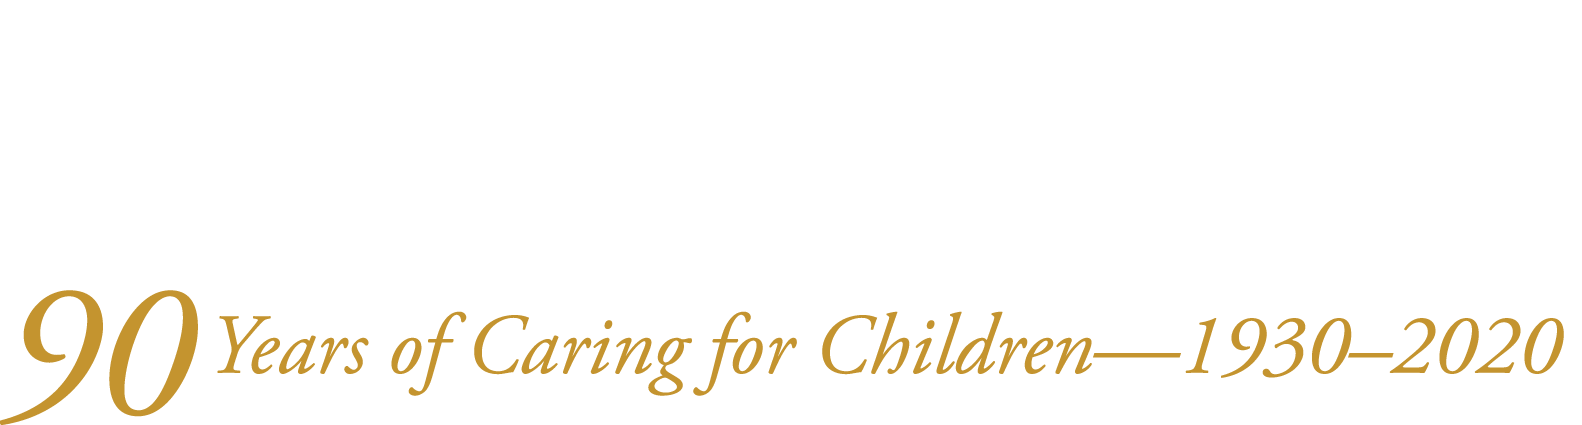 AAP Pediatrics